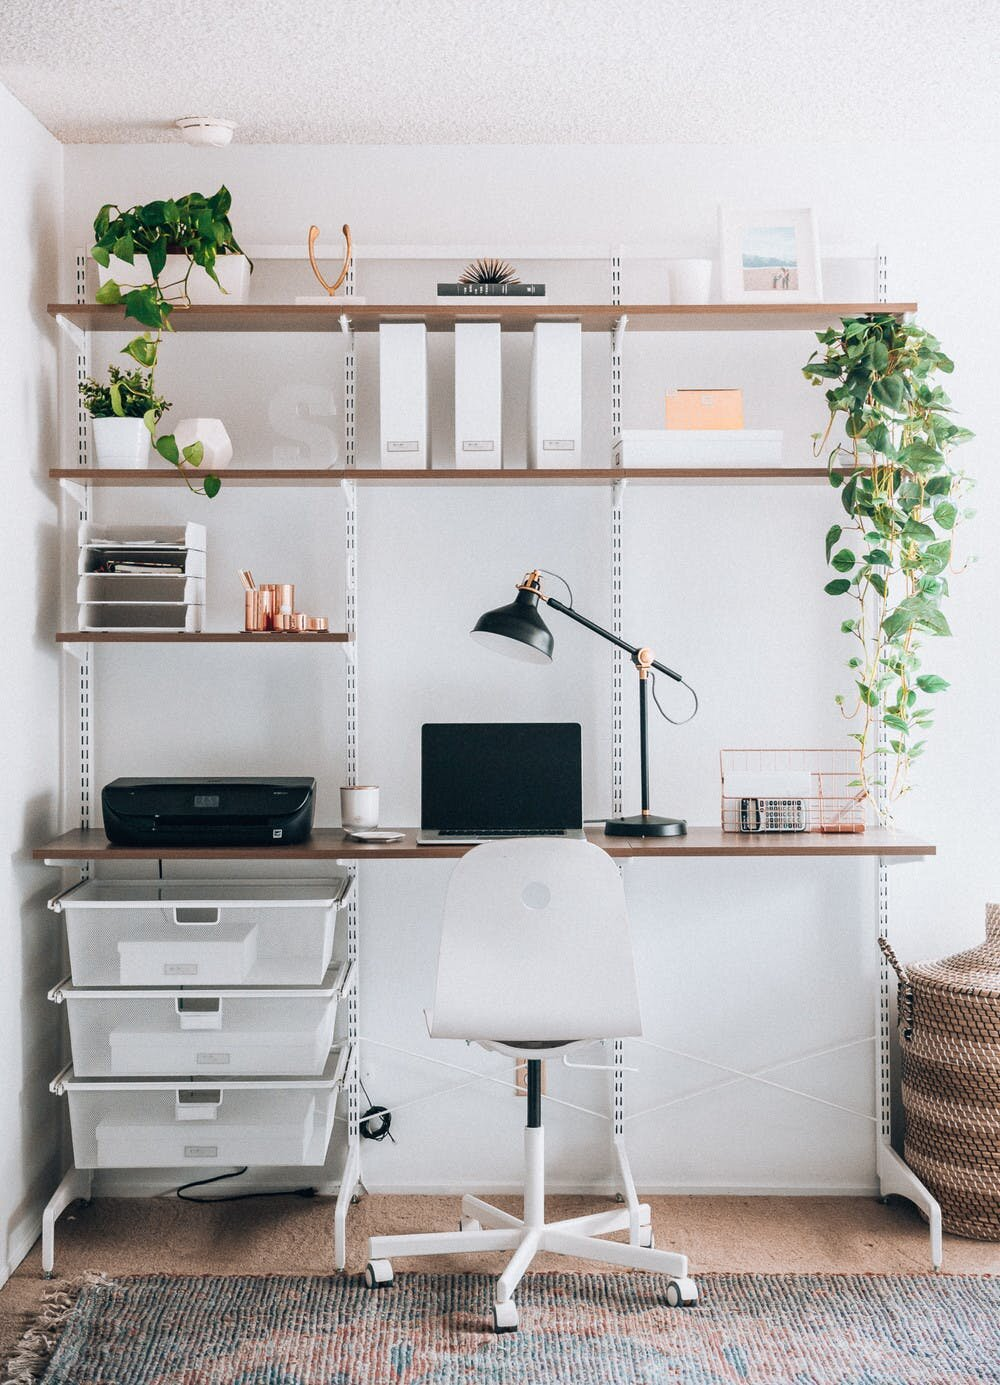 My Small Home Office Design Ideas with Decor Photos [Montenegro